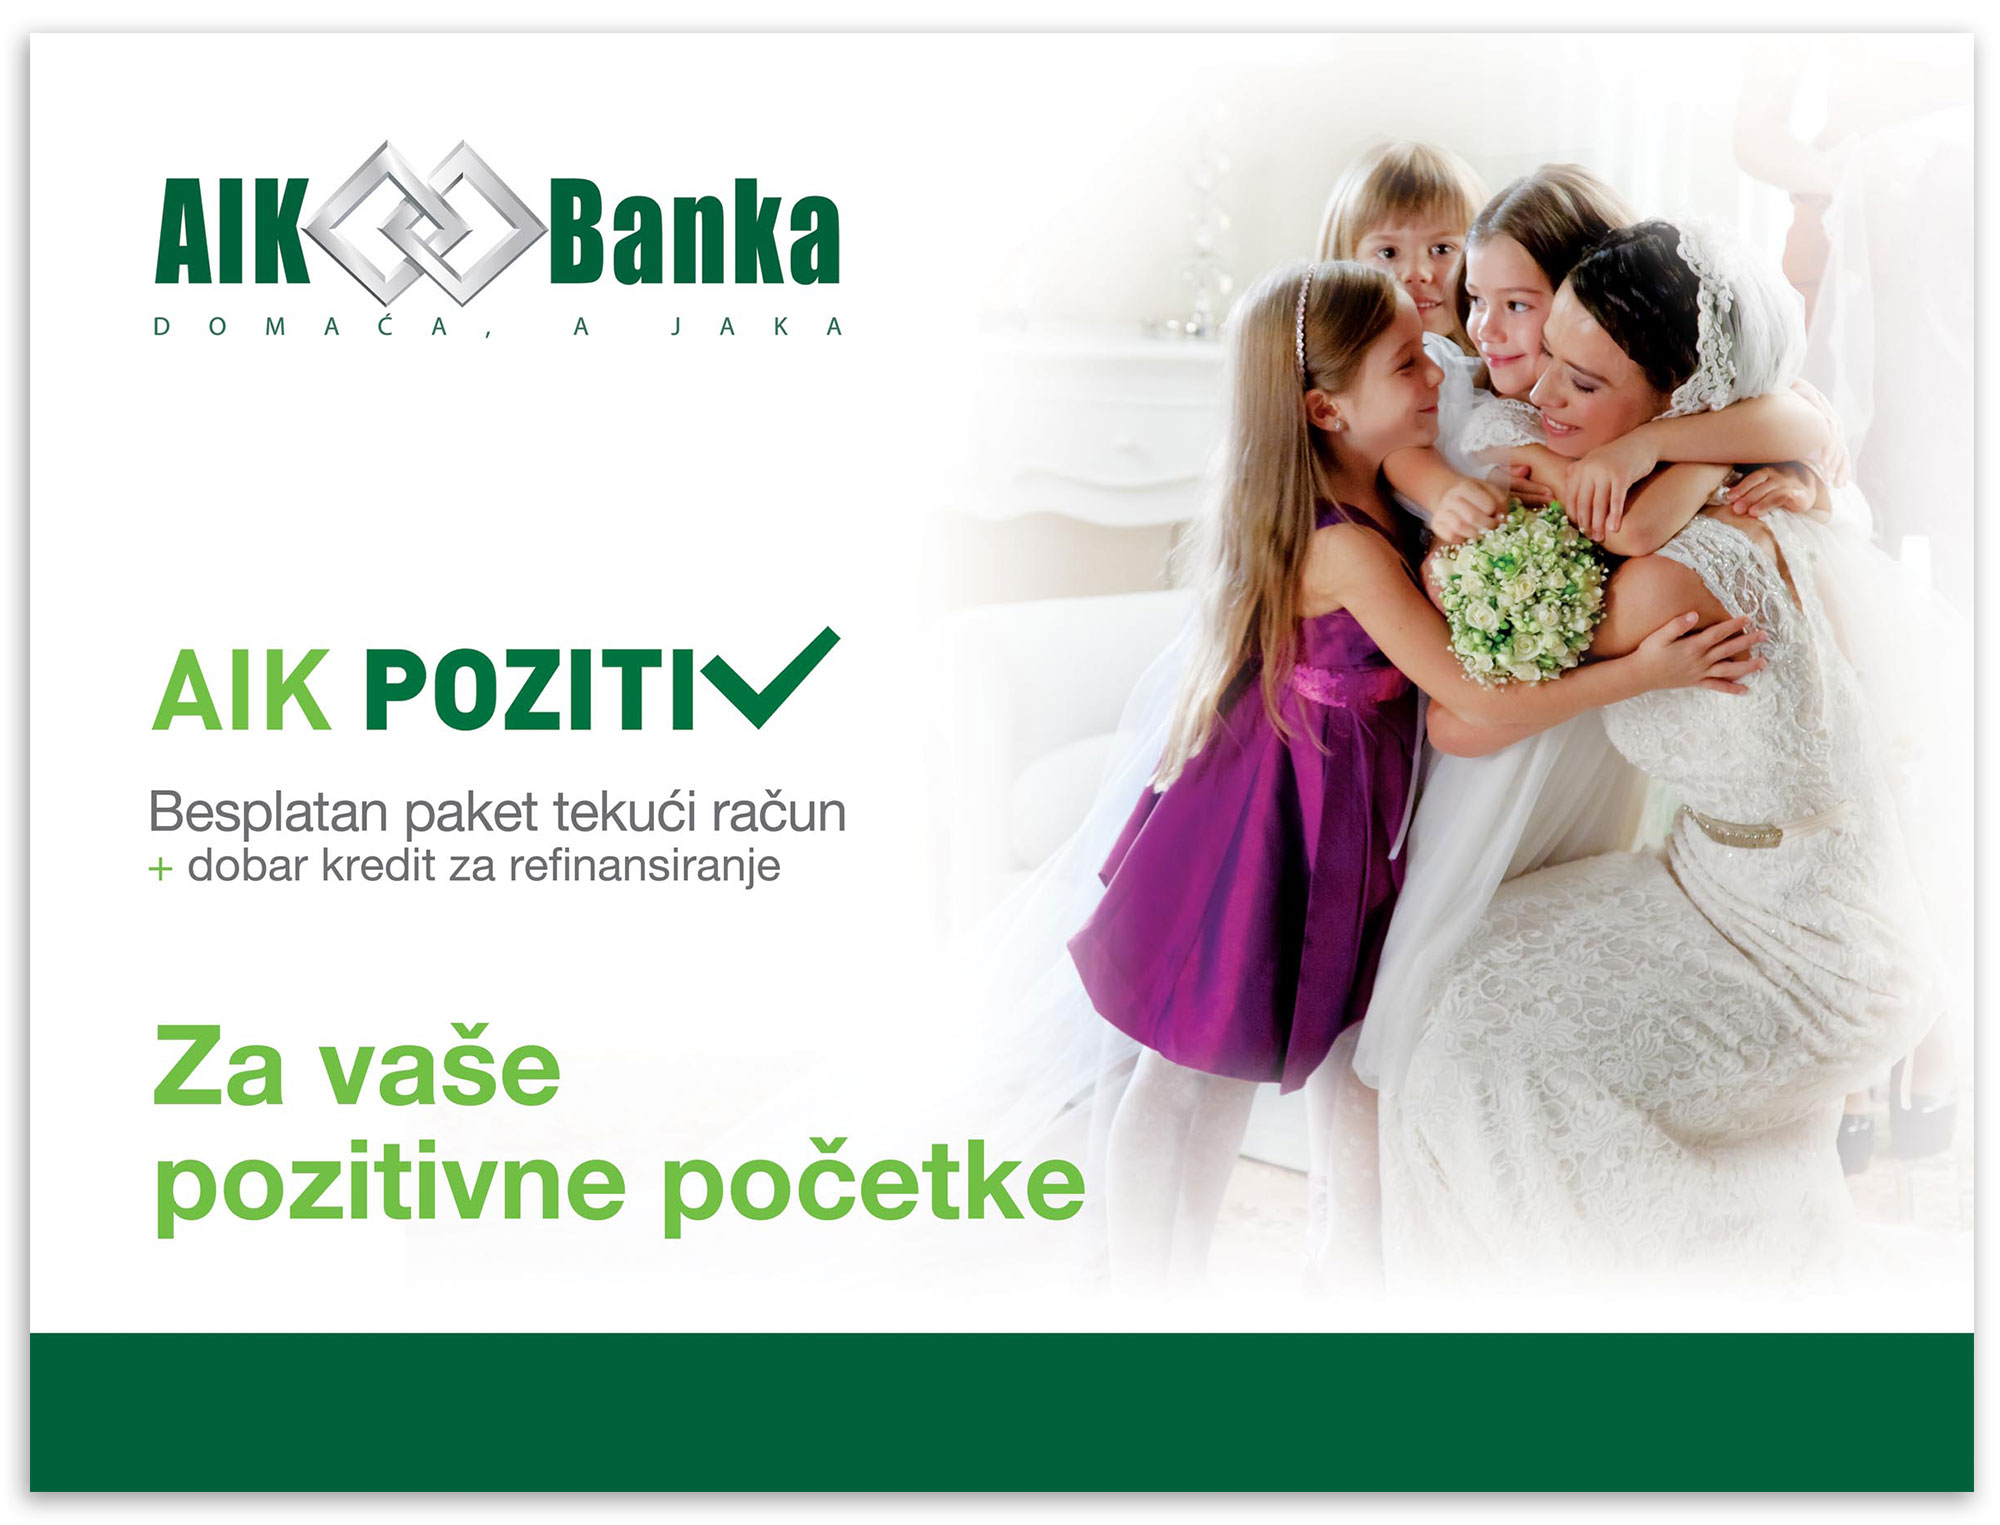 aik banka billboard 3